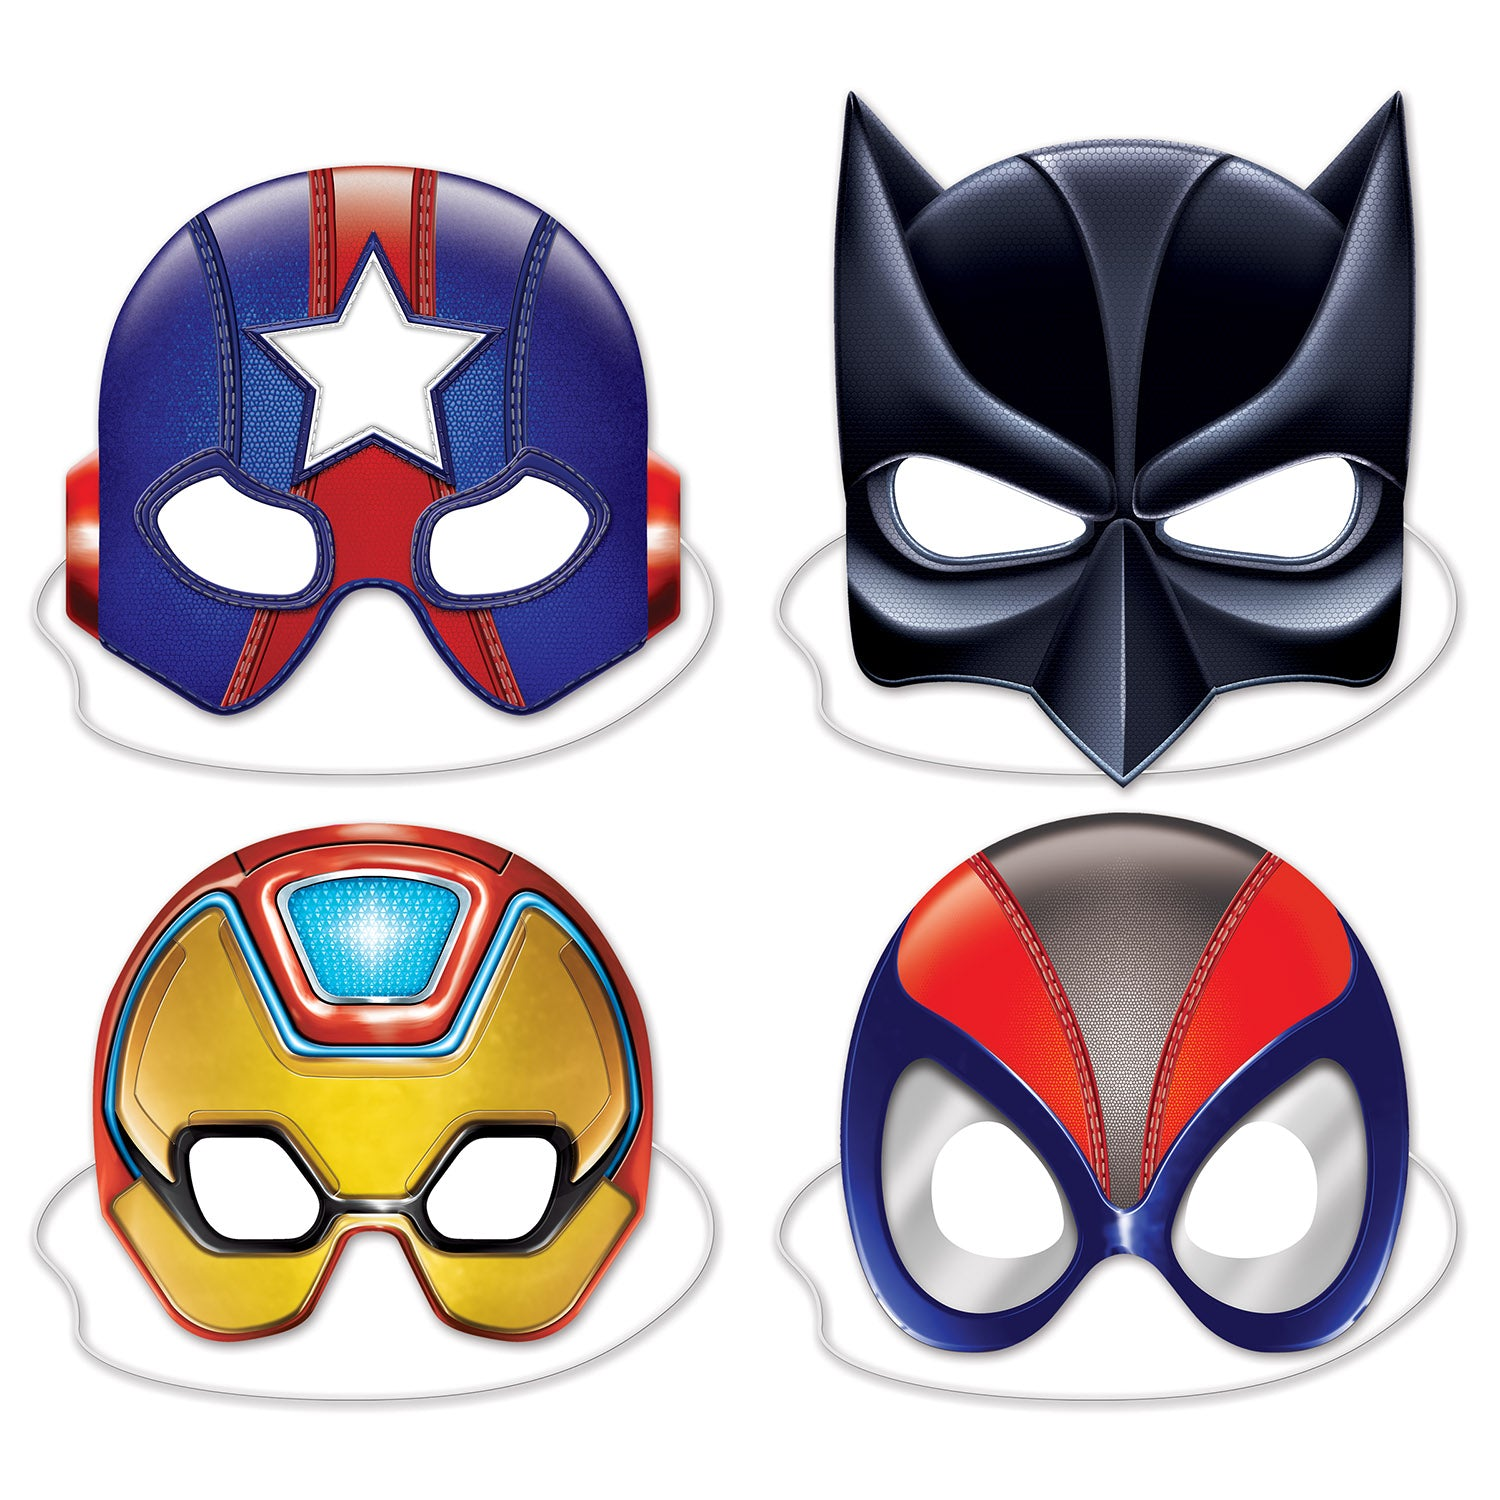 Deluxe Hero Masks (4/Pkg) by Beistle - Heroes Theme Decorations